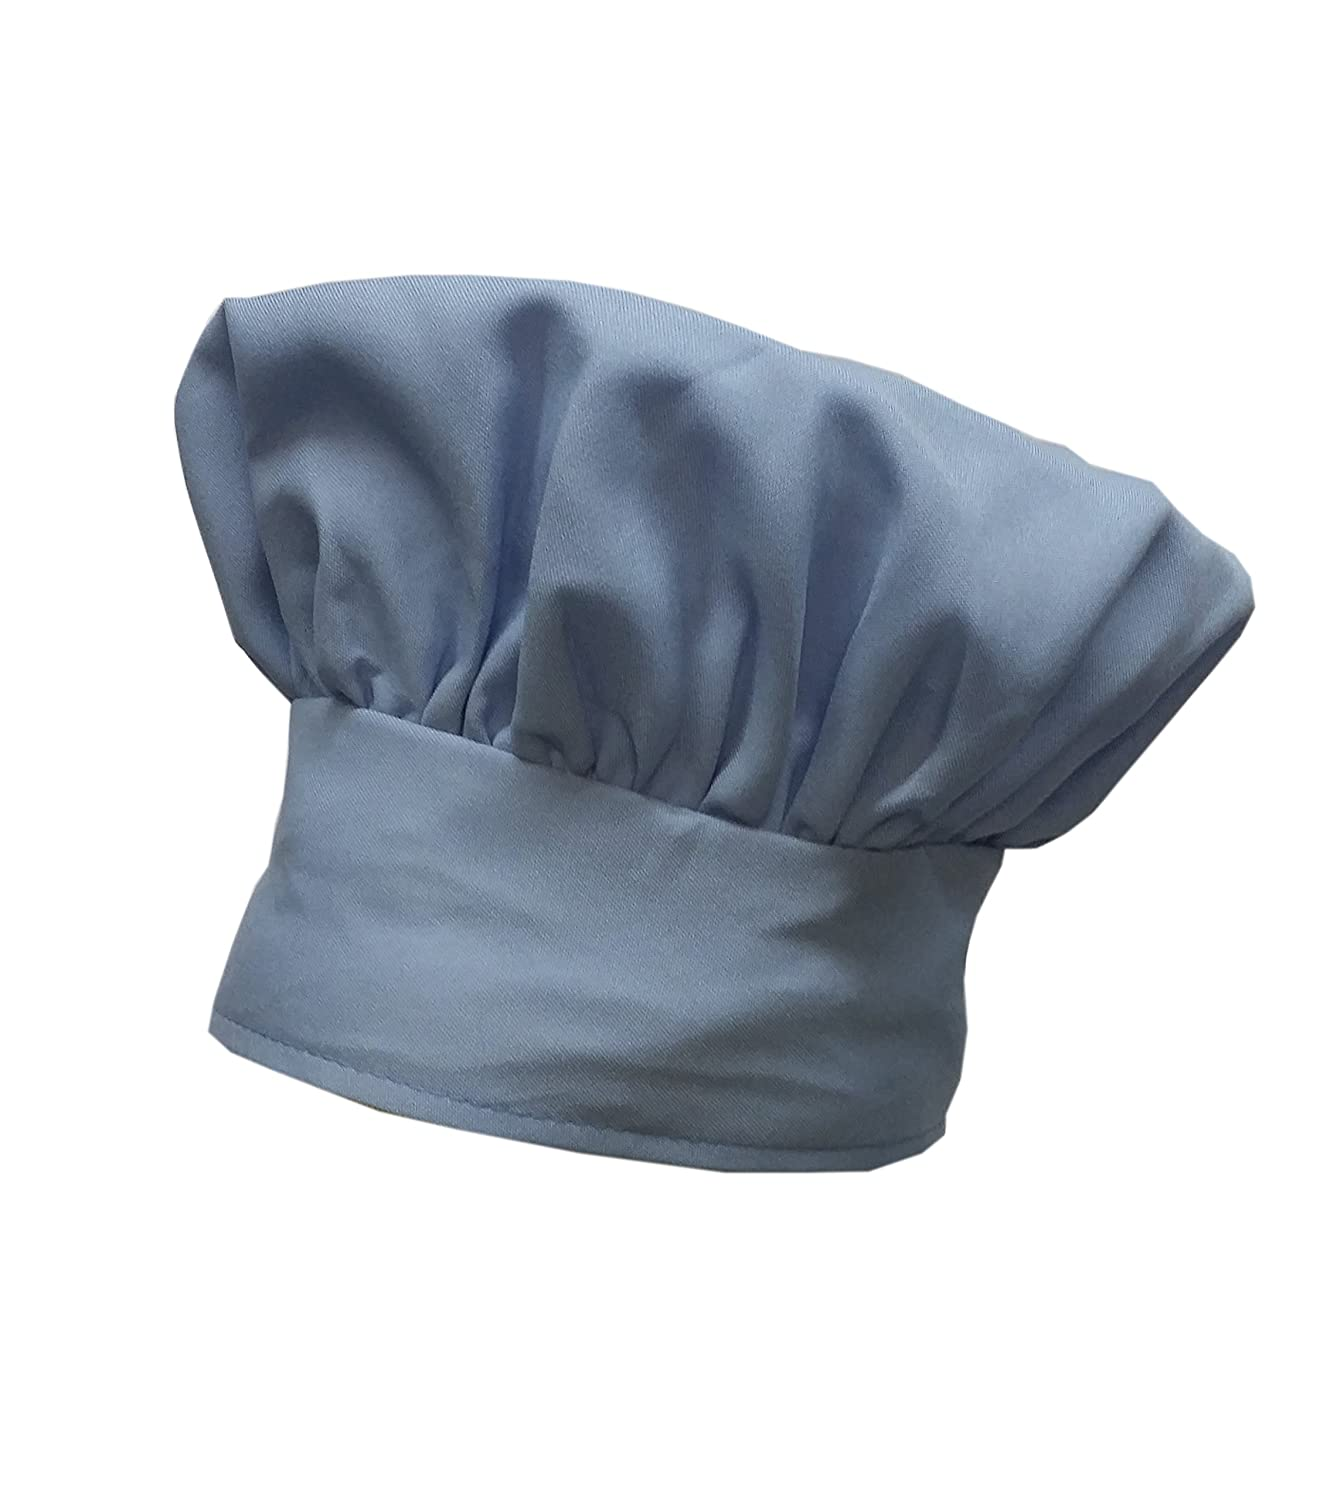 BEAUTIFUL Chefskin Baby Blue Chef Hat Mushroom Style with Velcro CHEFSKIN MUSHROOM